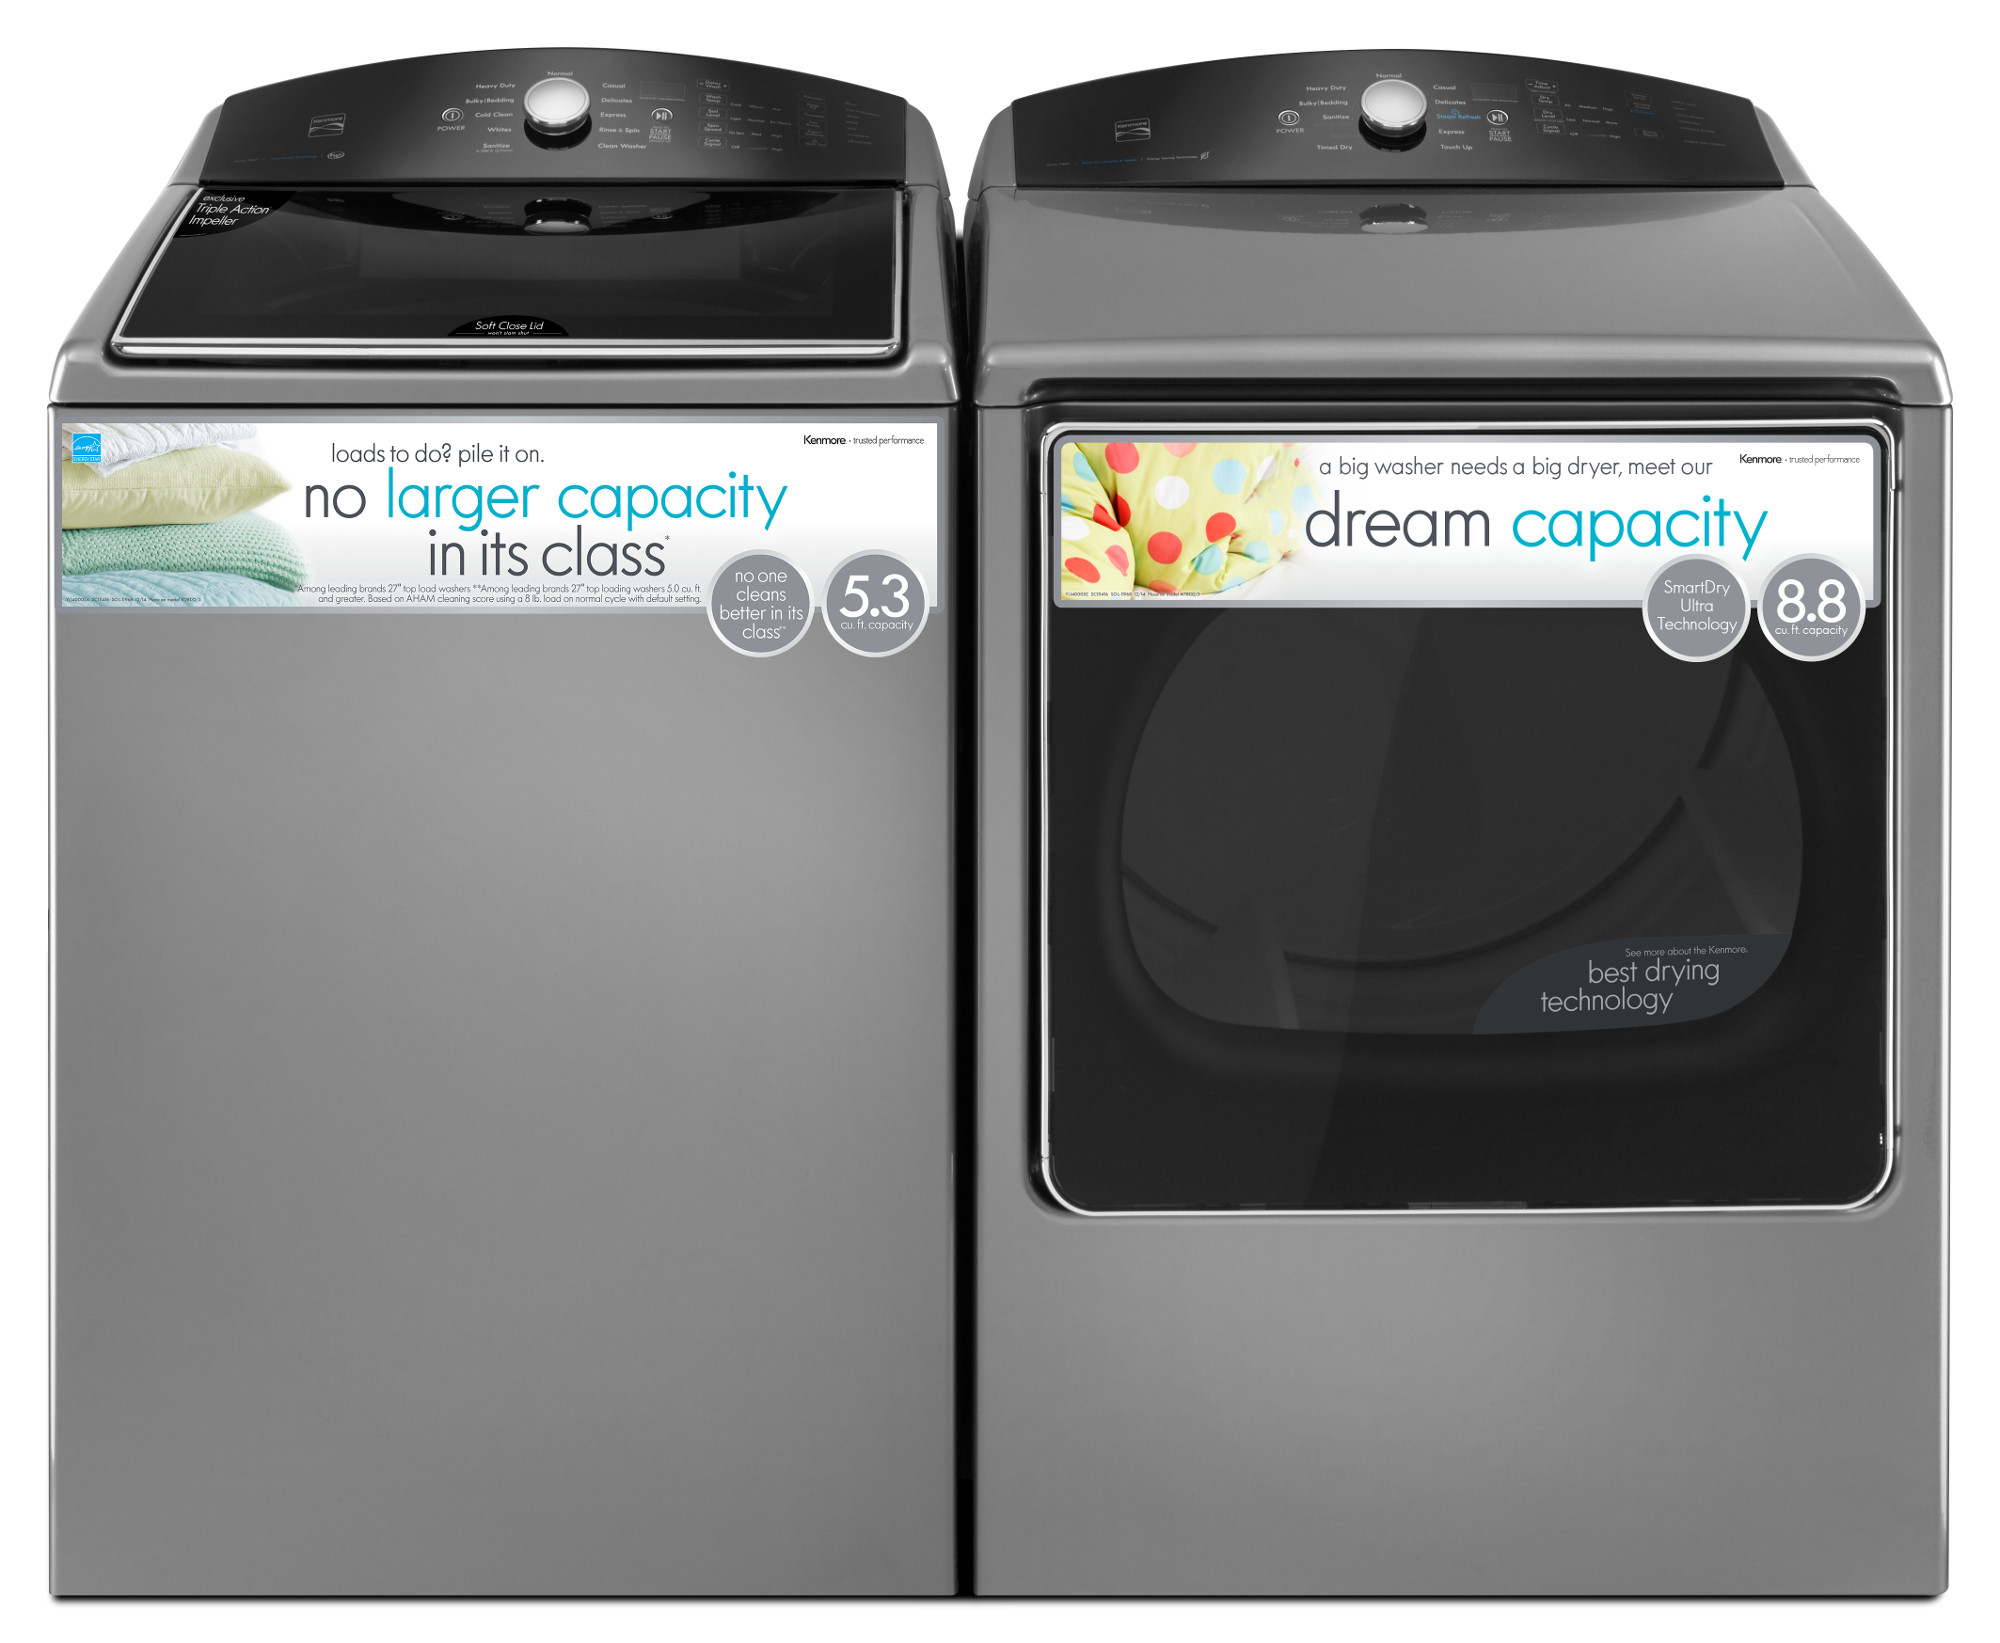 Kenmore 28133 5.3 cu. ft. Top-Load Washer w/ Exclusive Triple Action Impeller - Metallic